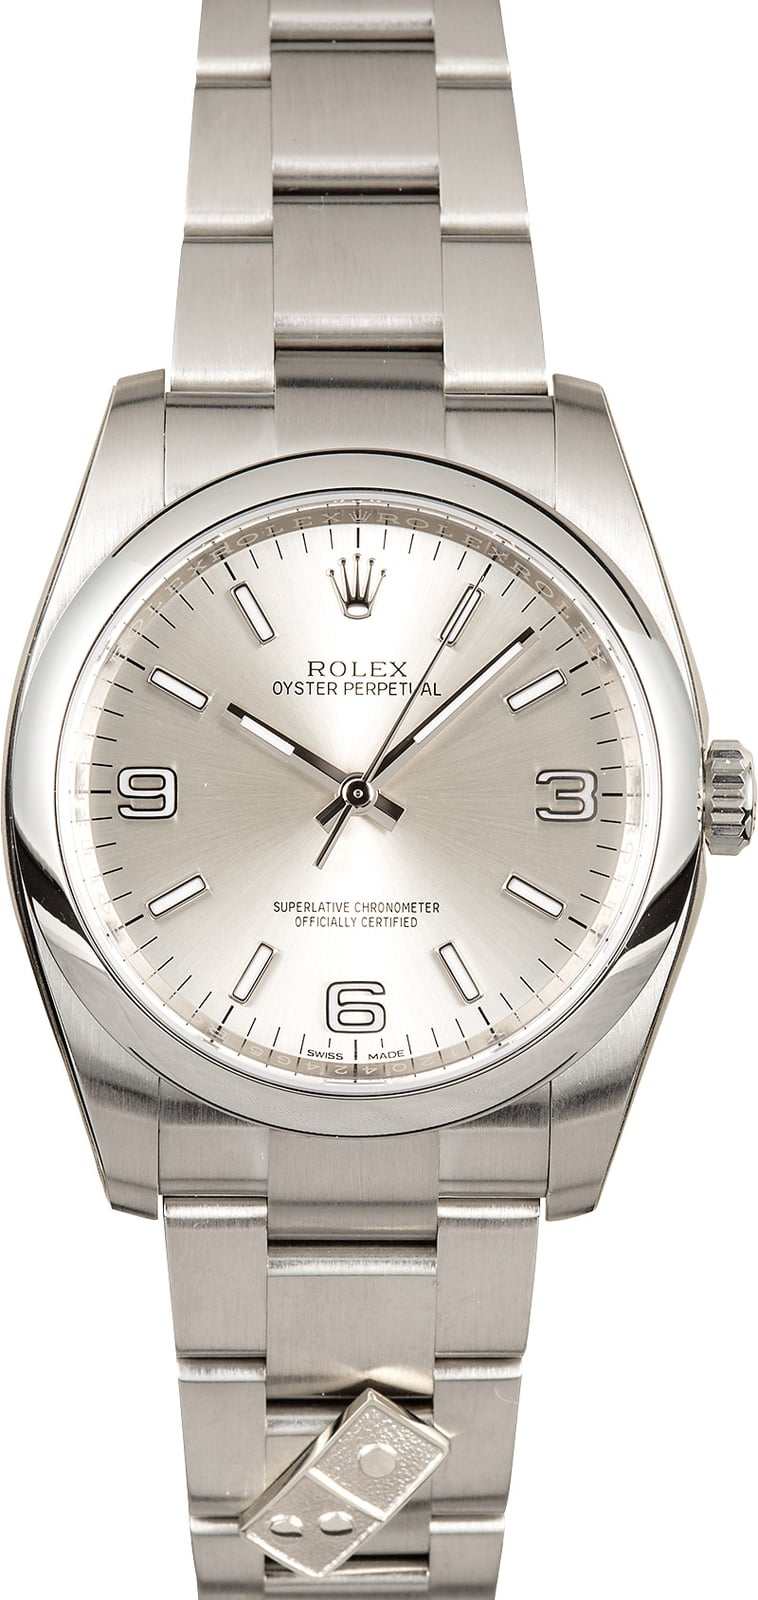 New Rolex Oyster Perpetual w/ Dominos Logo